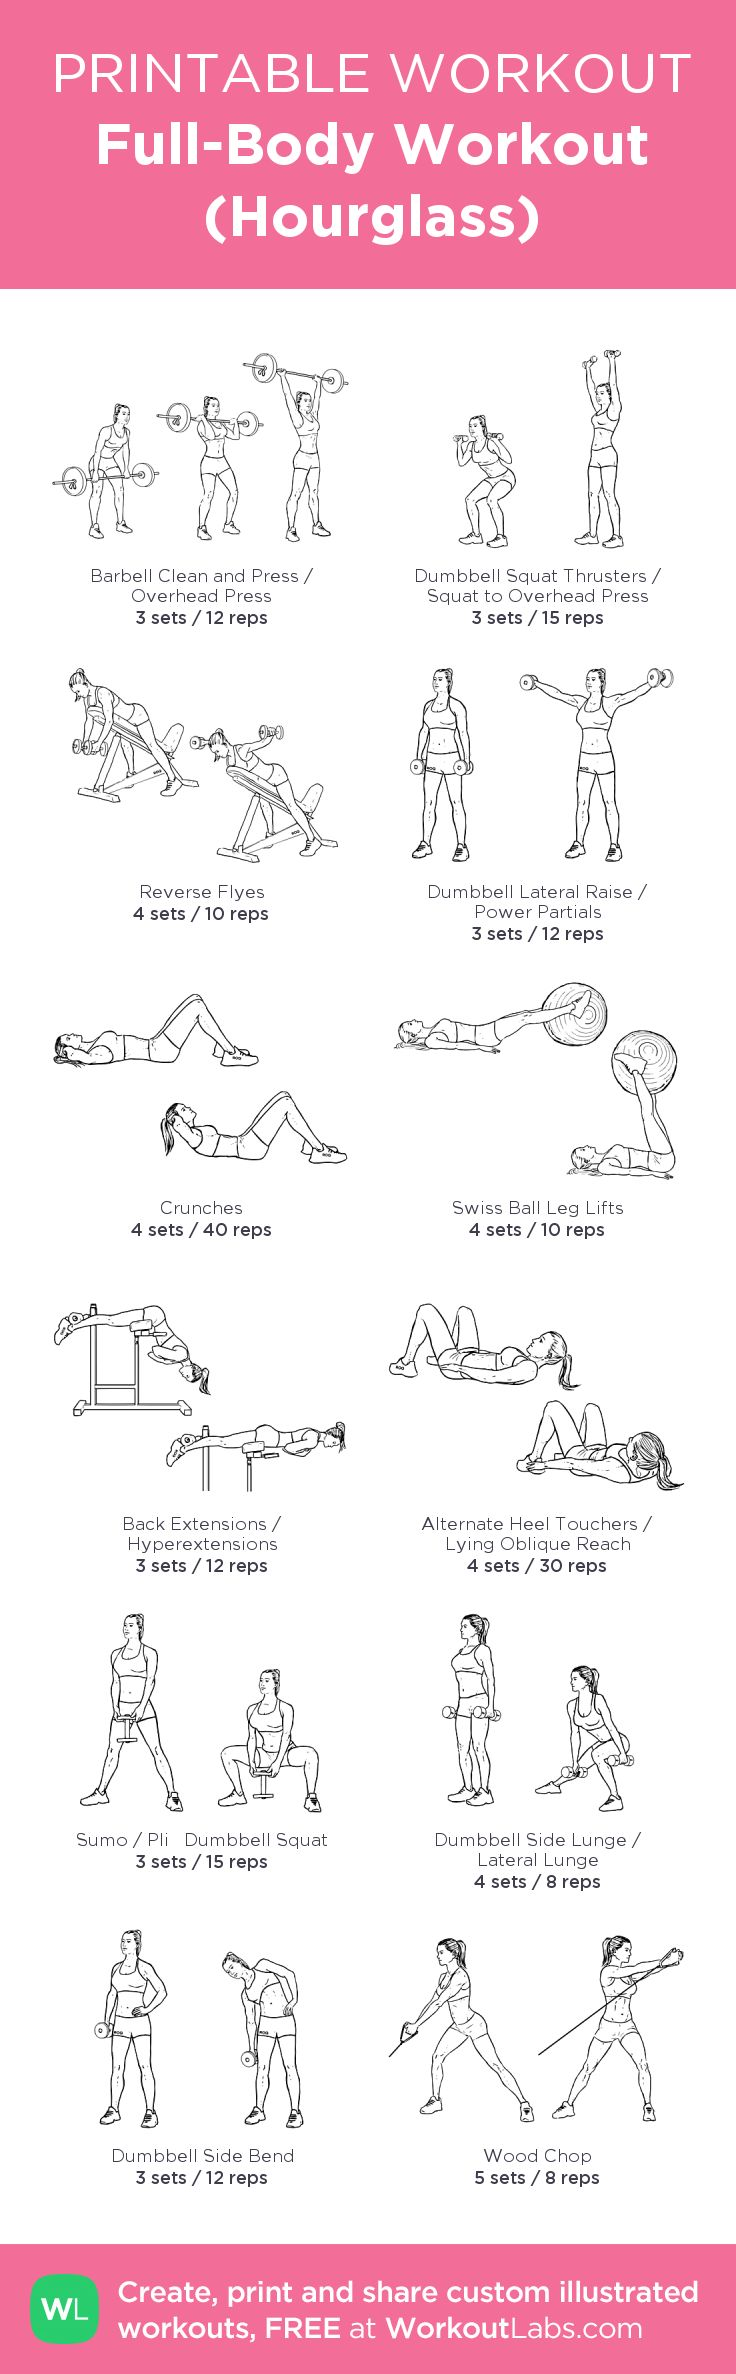 Full-Body Workout (Hourglass): my visual workout created at WorkoutLabs.com • Click through to customize and download as a FREE PDF! #customworkout